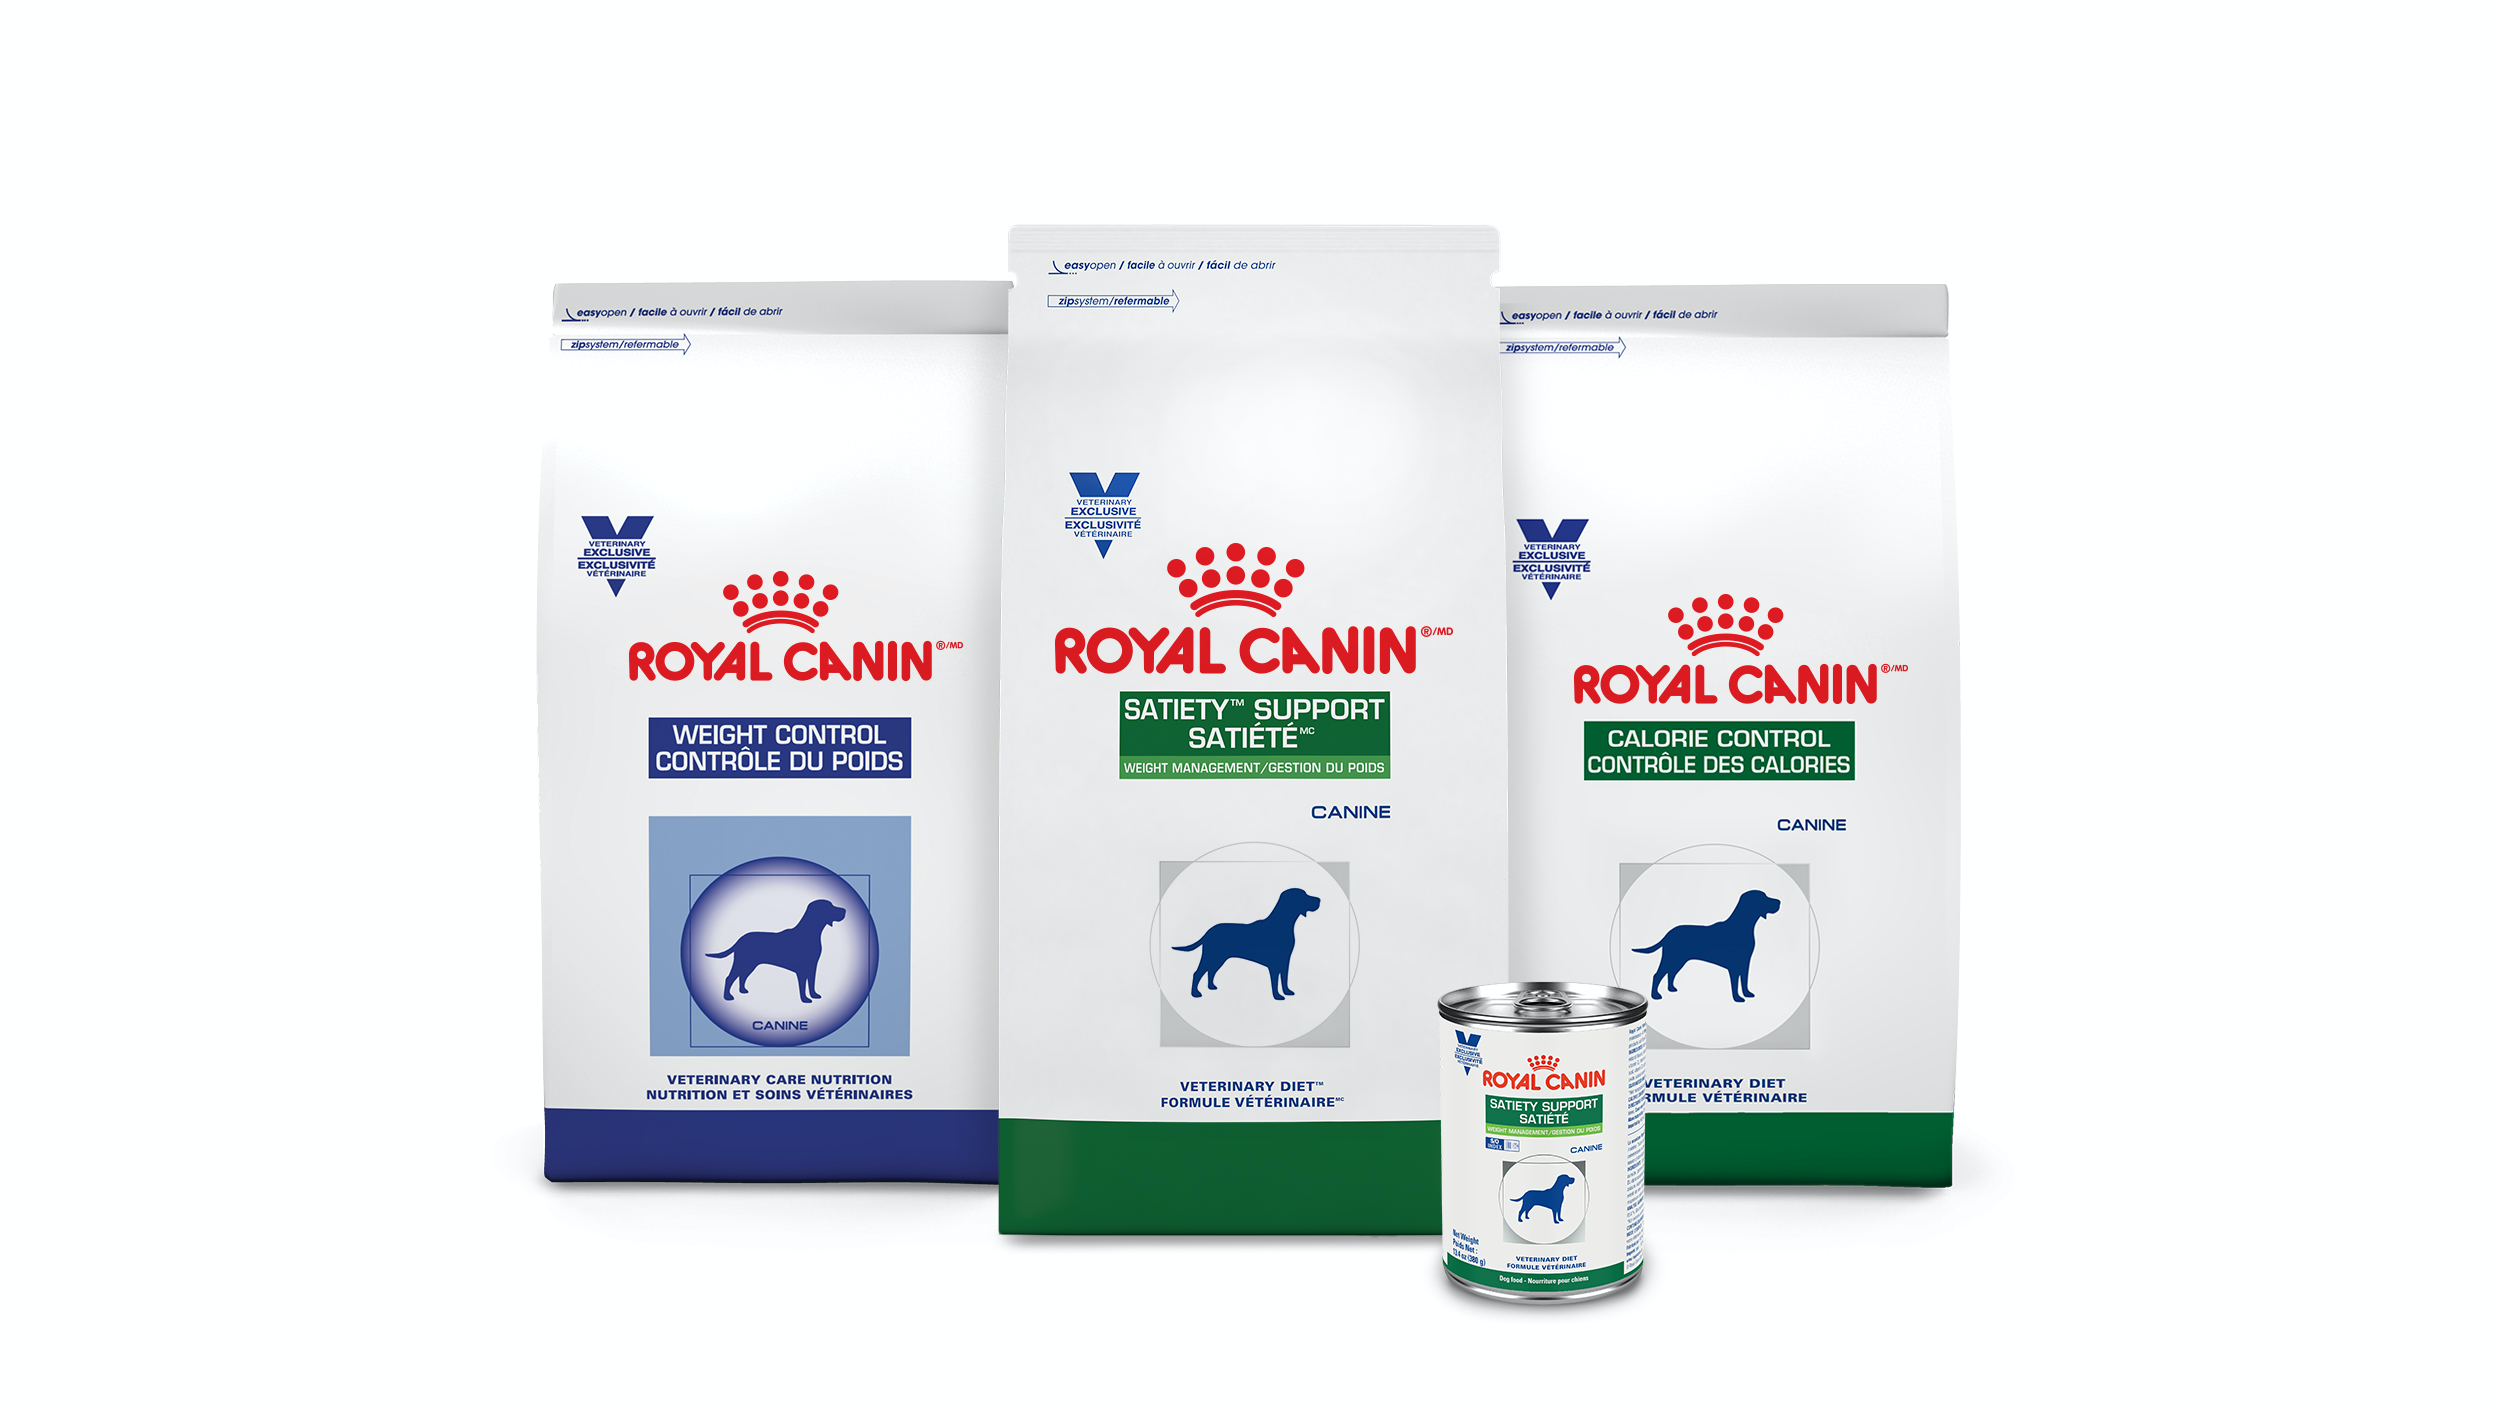 Tailored nutrition - Royal Canin